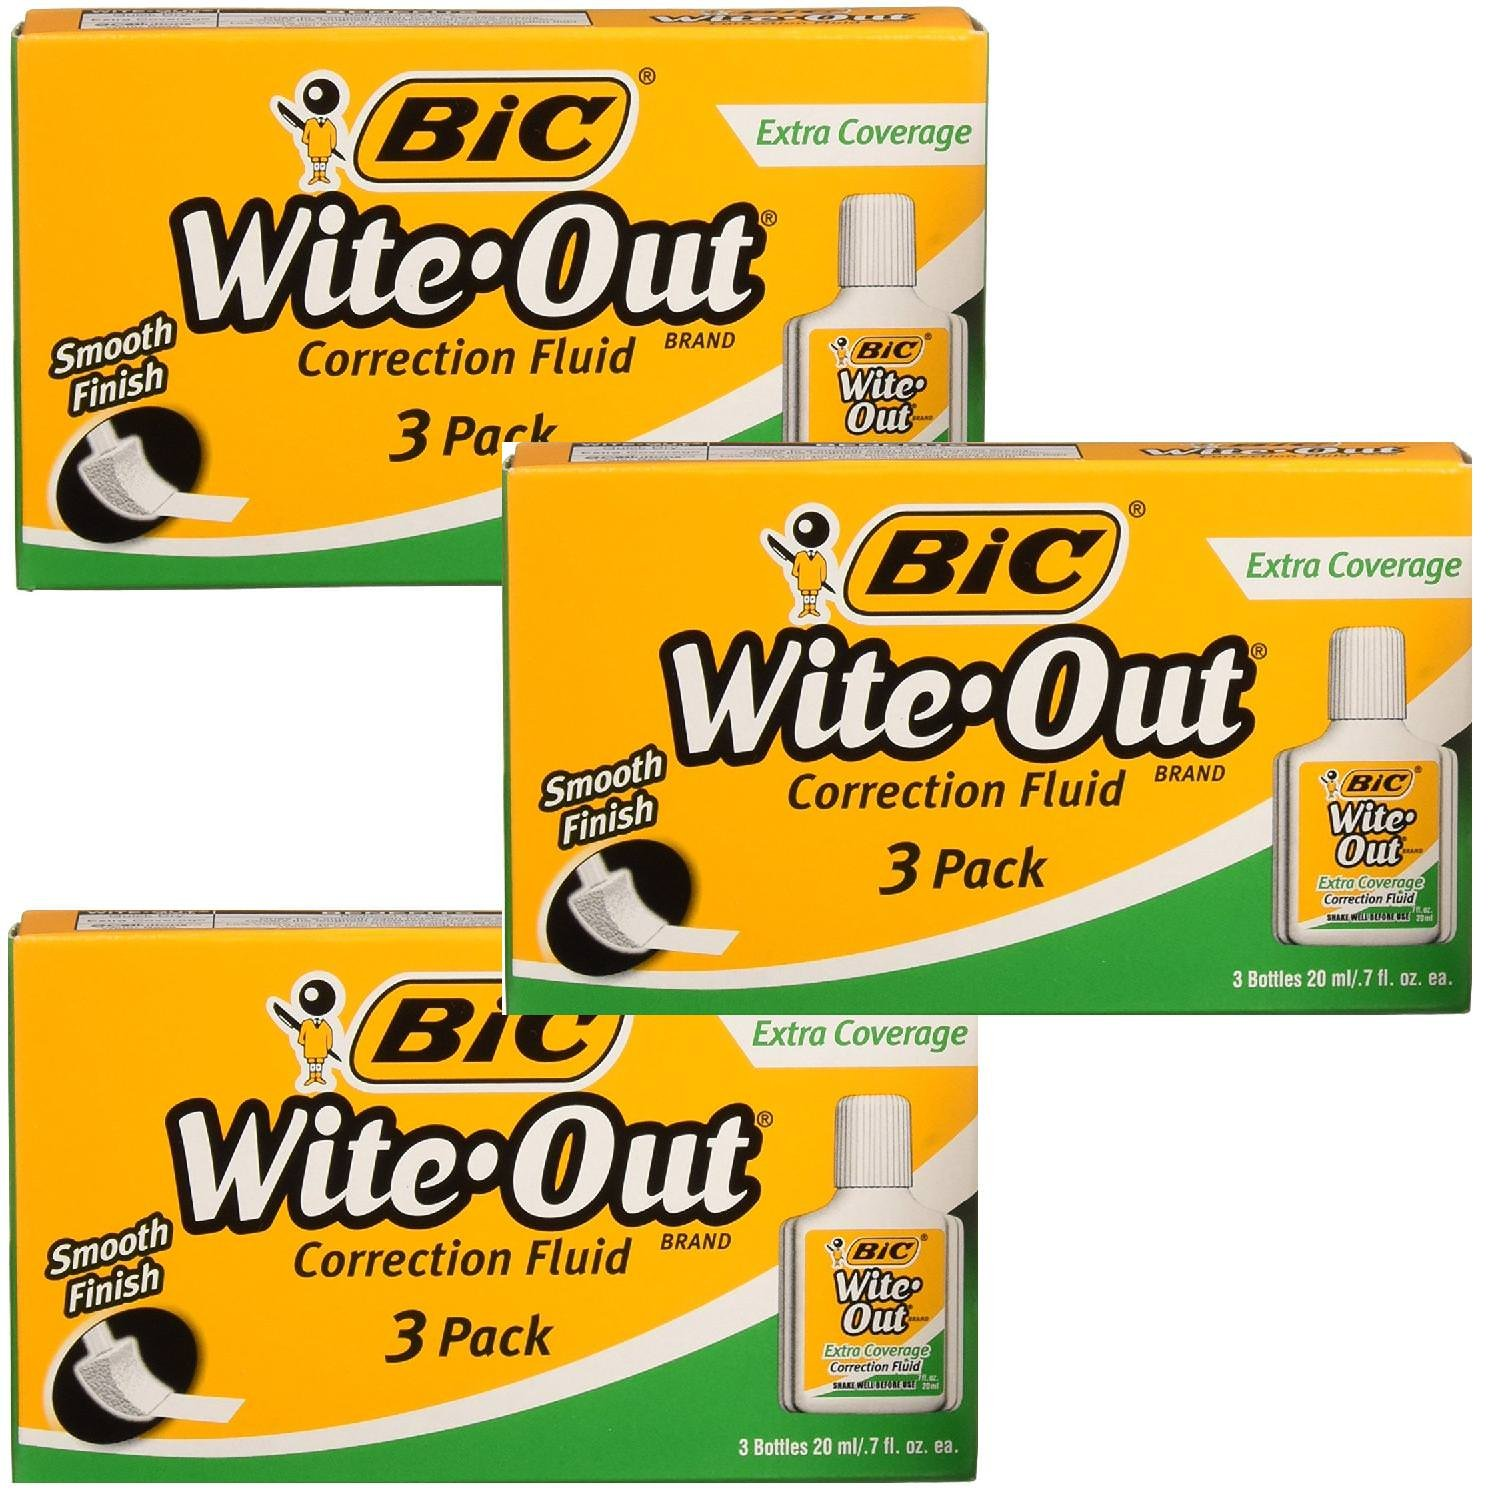 BIC WOFEC324 Wite-Out Brand Extra Coverage Correction Fluid, 20 ml, White, 9-Count